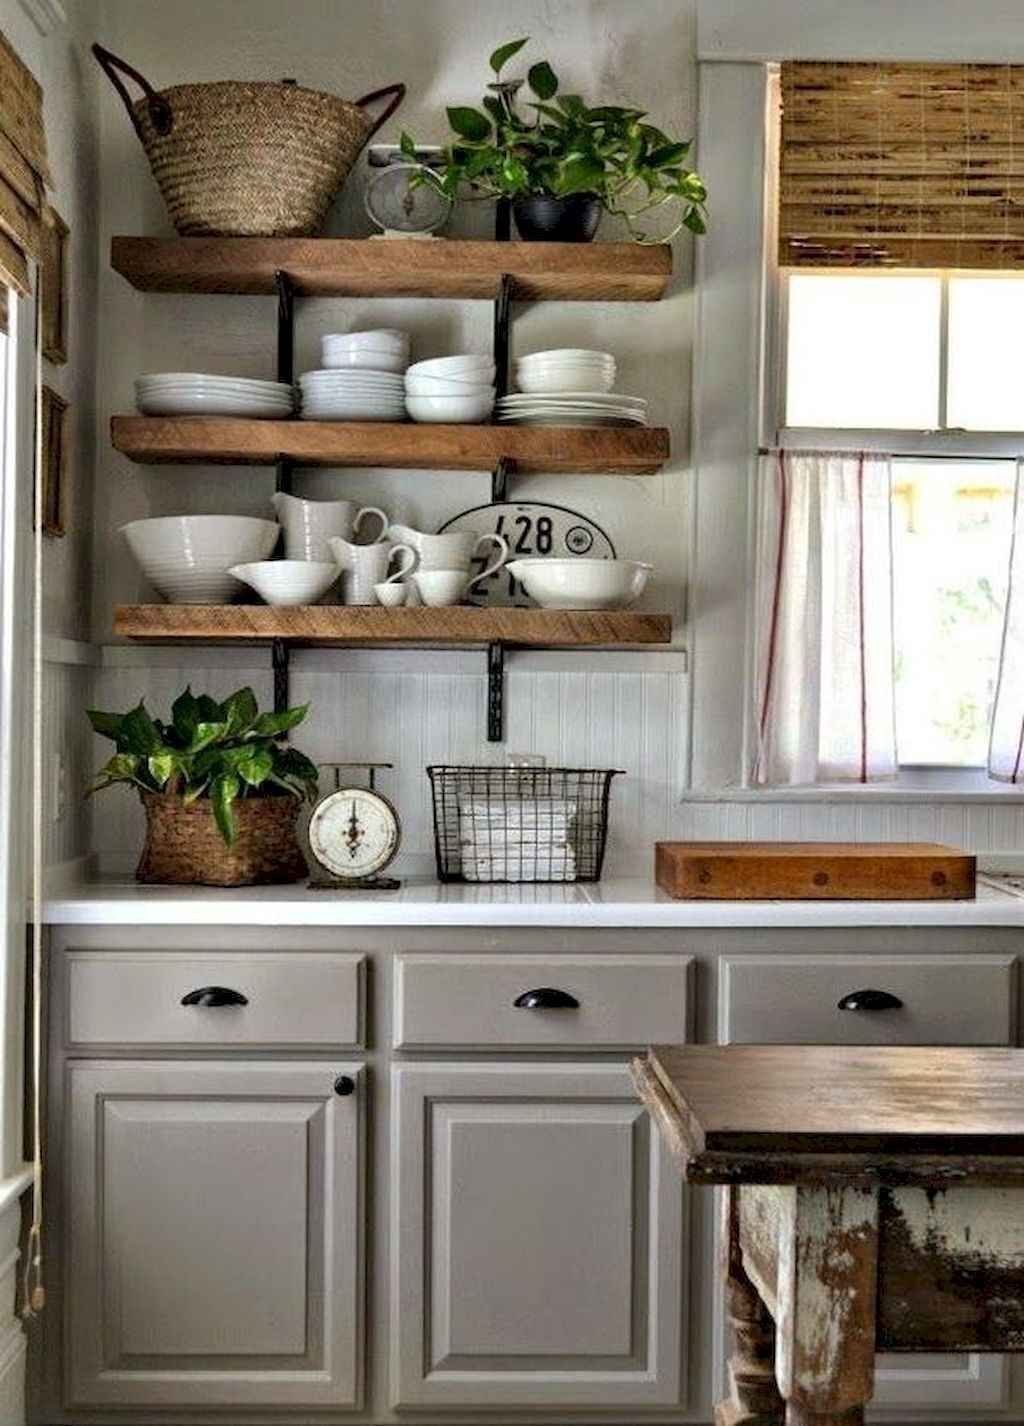 90 Rustic Kitchen Cabinets Farmhouse Style Ideas (74 - Kitchen remodel small, Budget kitchen remodel, Rustic kitchen, Rustic kitchen cabinets, Farmhouse kitchen decor, Kitchen trends - 90 Rustic Kitchen Cabinets Farmhouse Style Ideas (74)